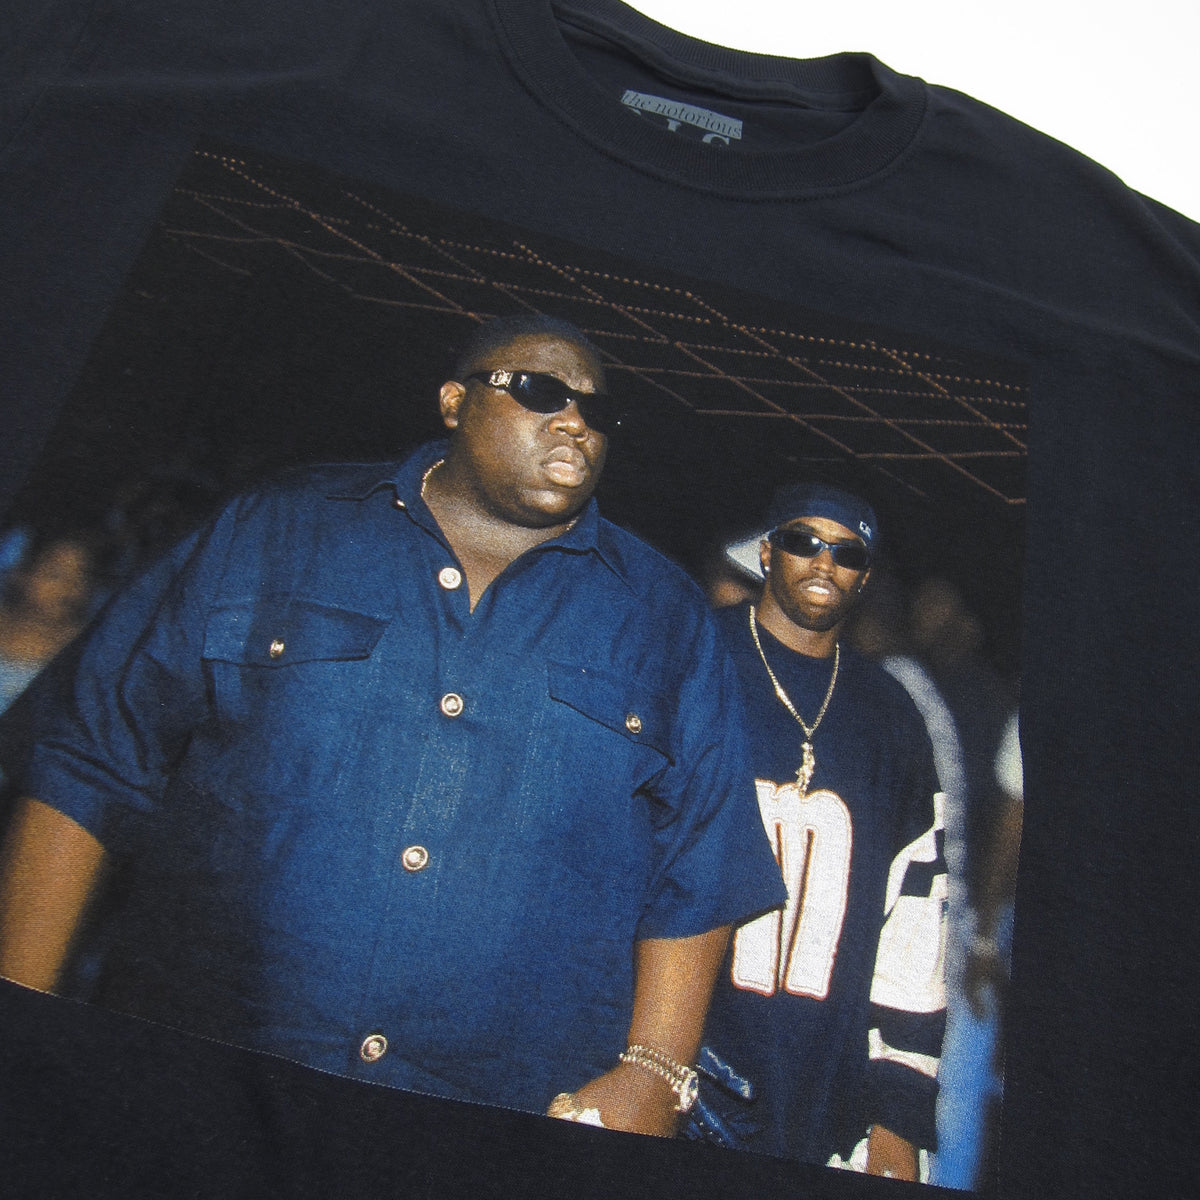 The Notorious B.I.G.: Biggie & Puff Club Shirt - Black